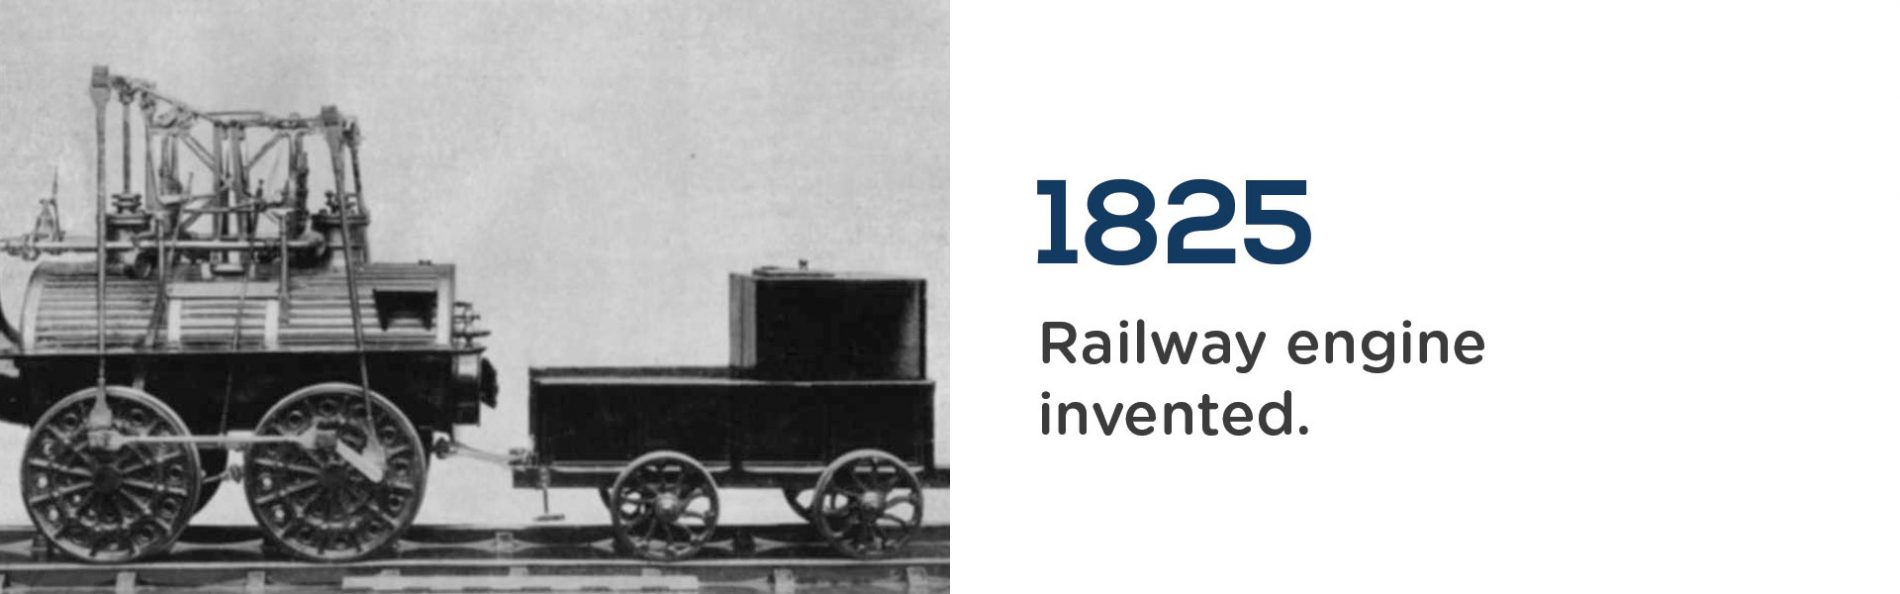 1825, Railway engine invented. Wrigley Claydon Solicitors, Trusted for 200 years